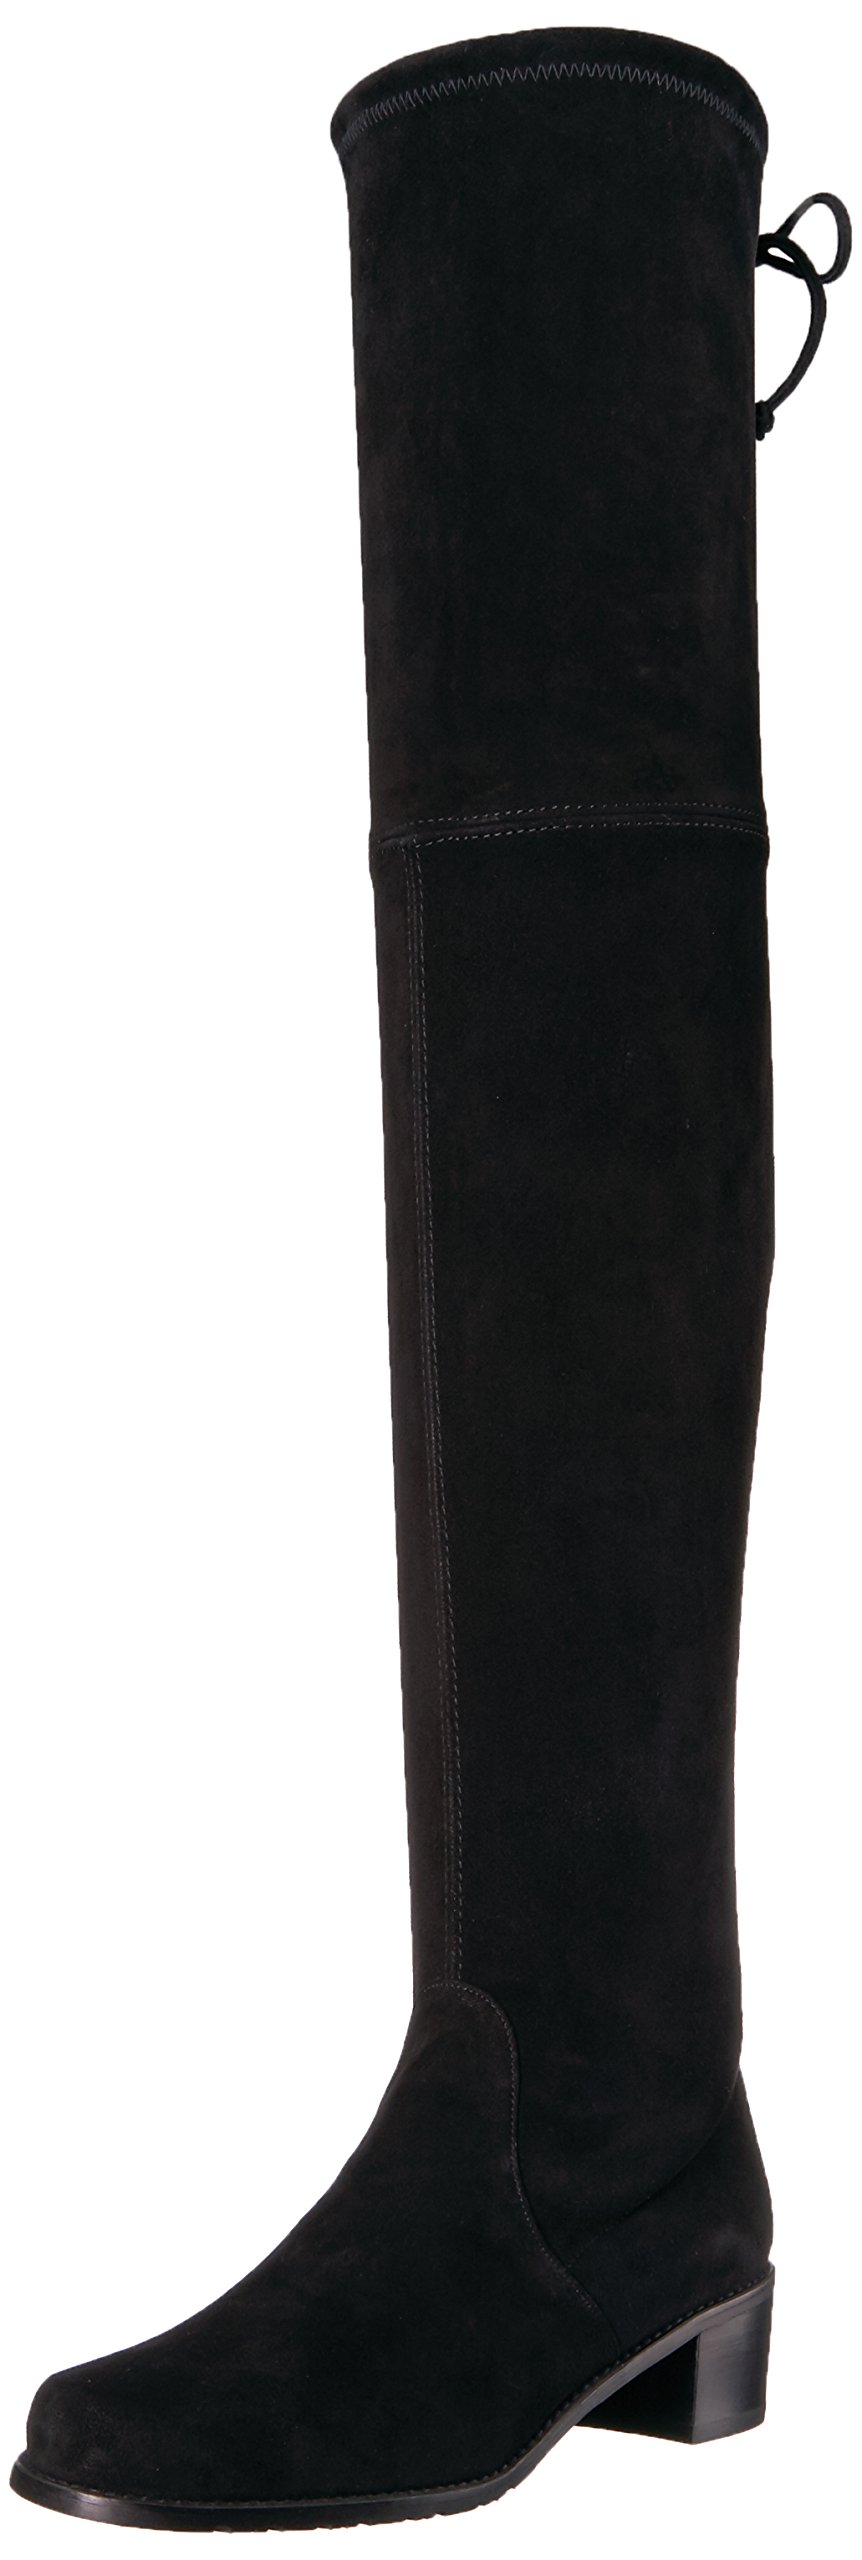 Stuart Weitzman Women's Midland Over The Knee Boot, Black, 7.5 Medium US